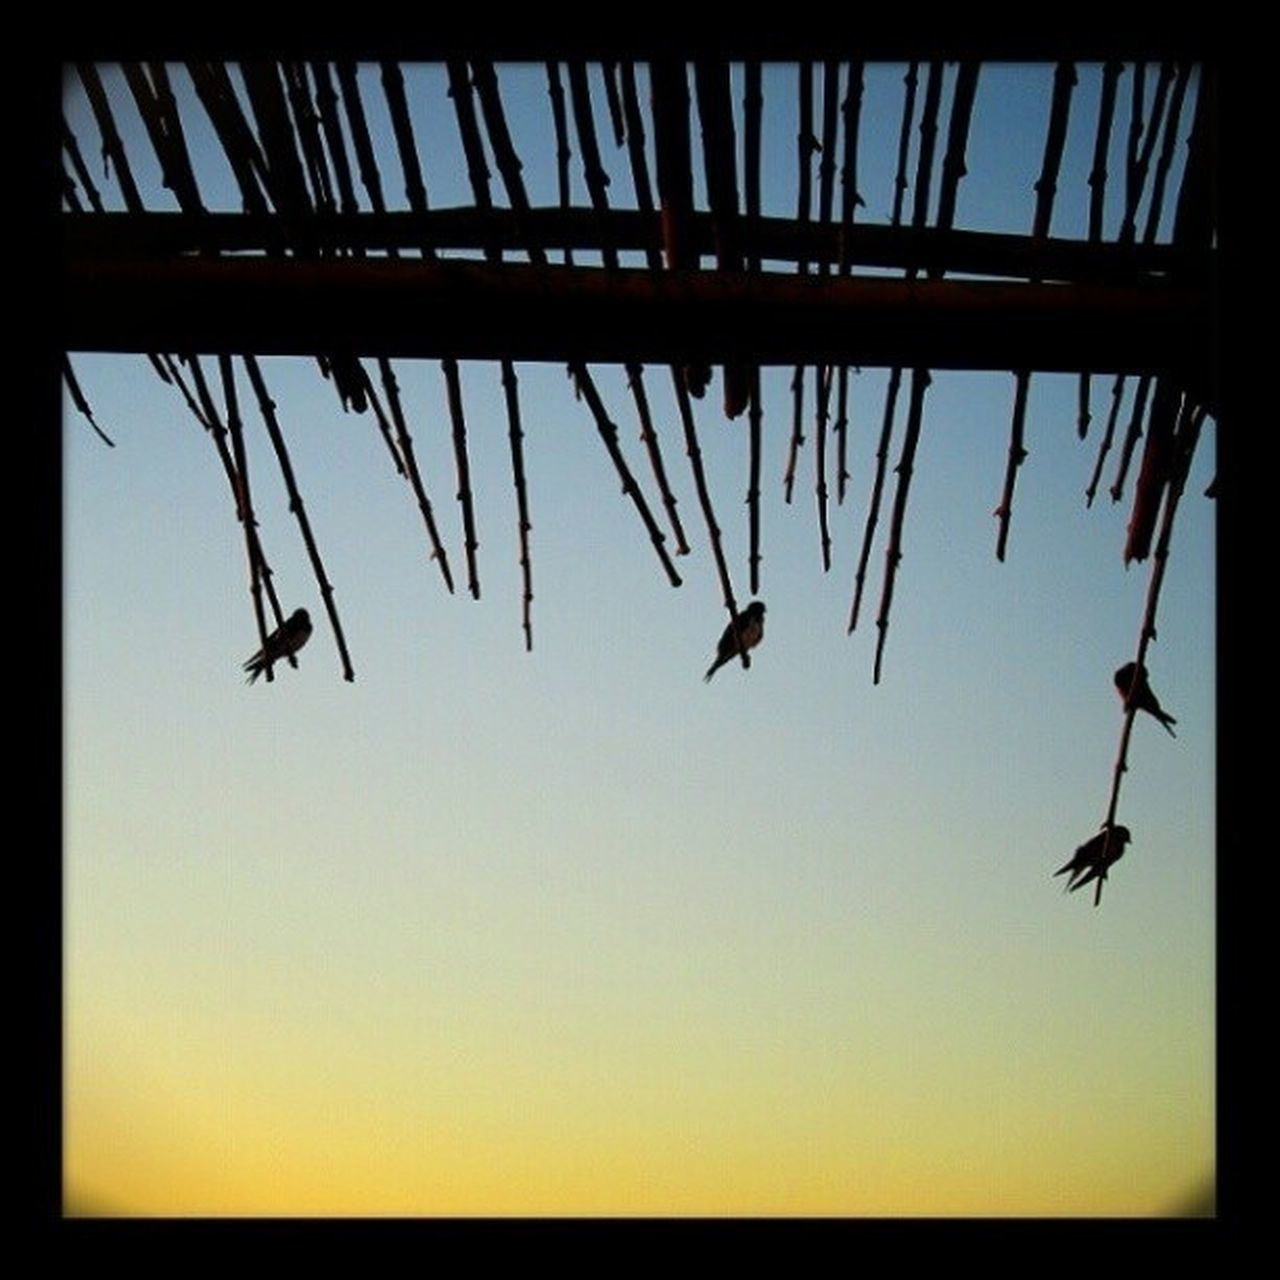 Silhouette Of Birds Perching On Thatched Roof